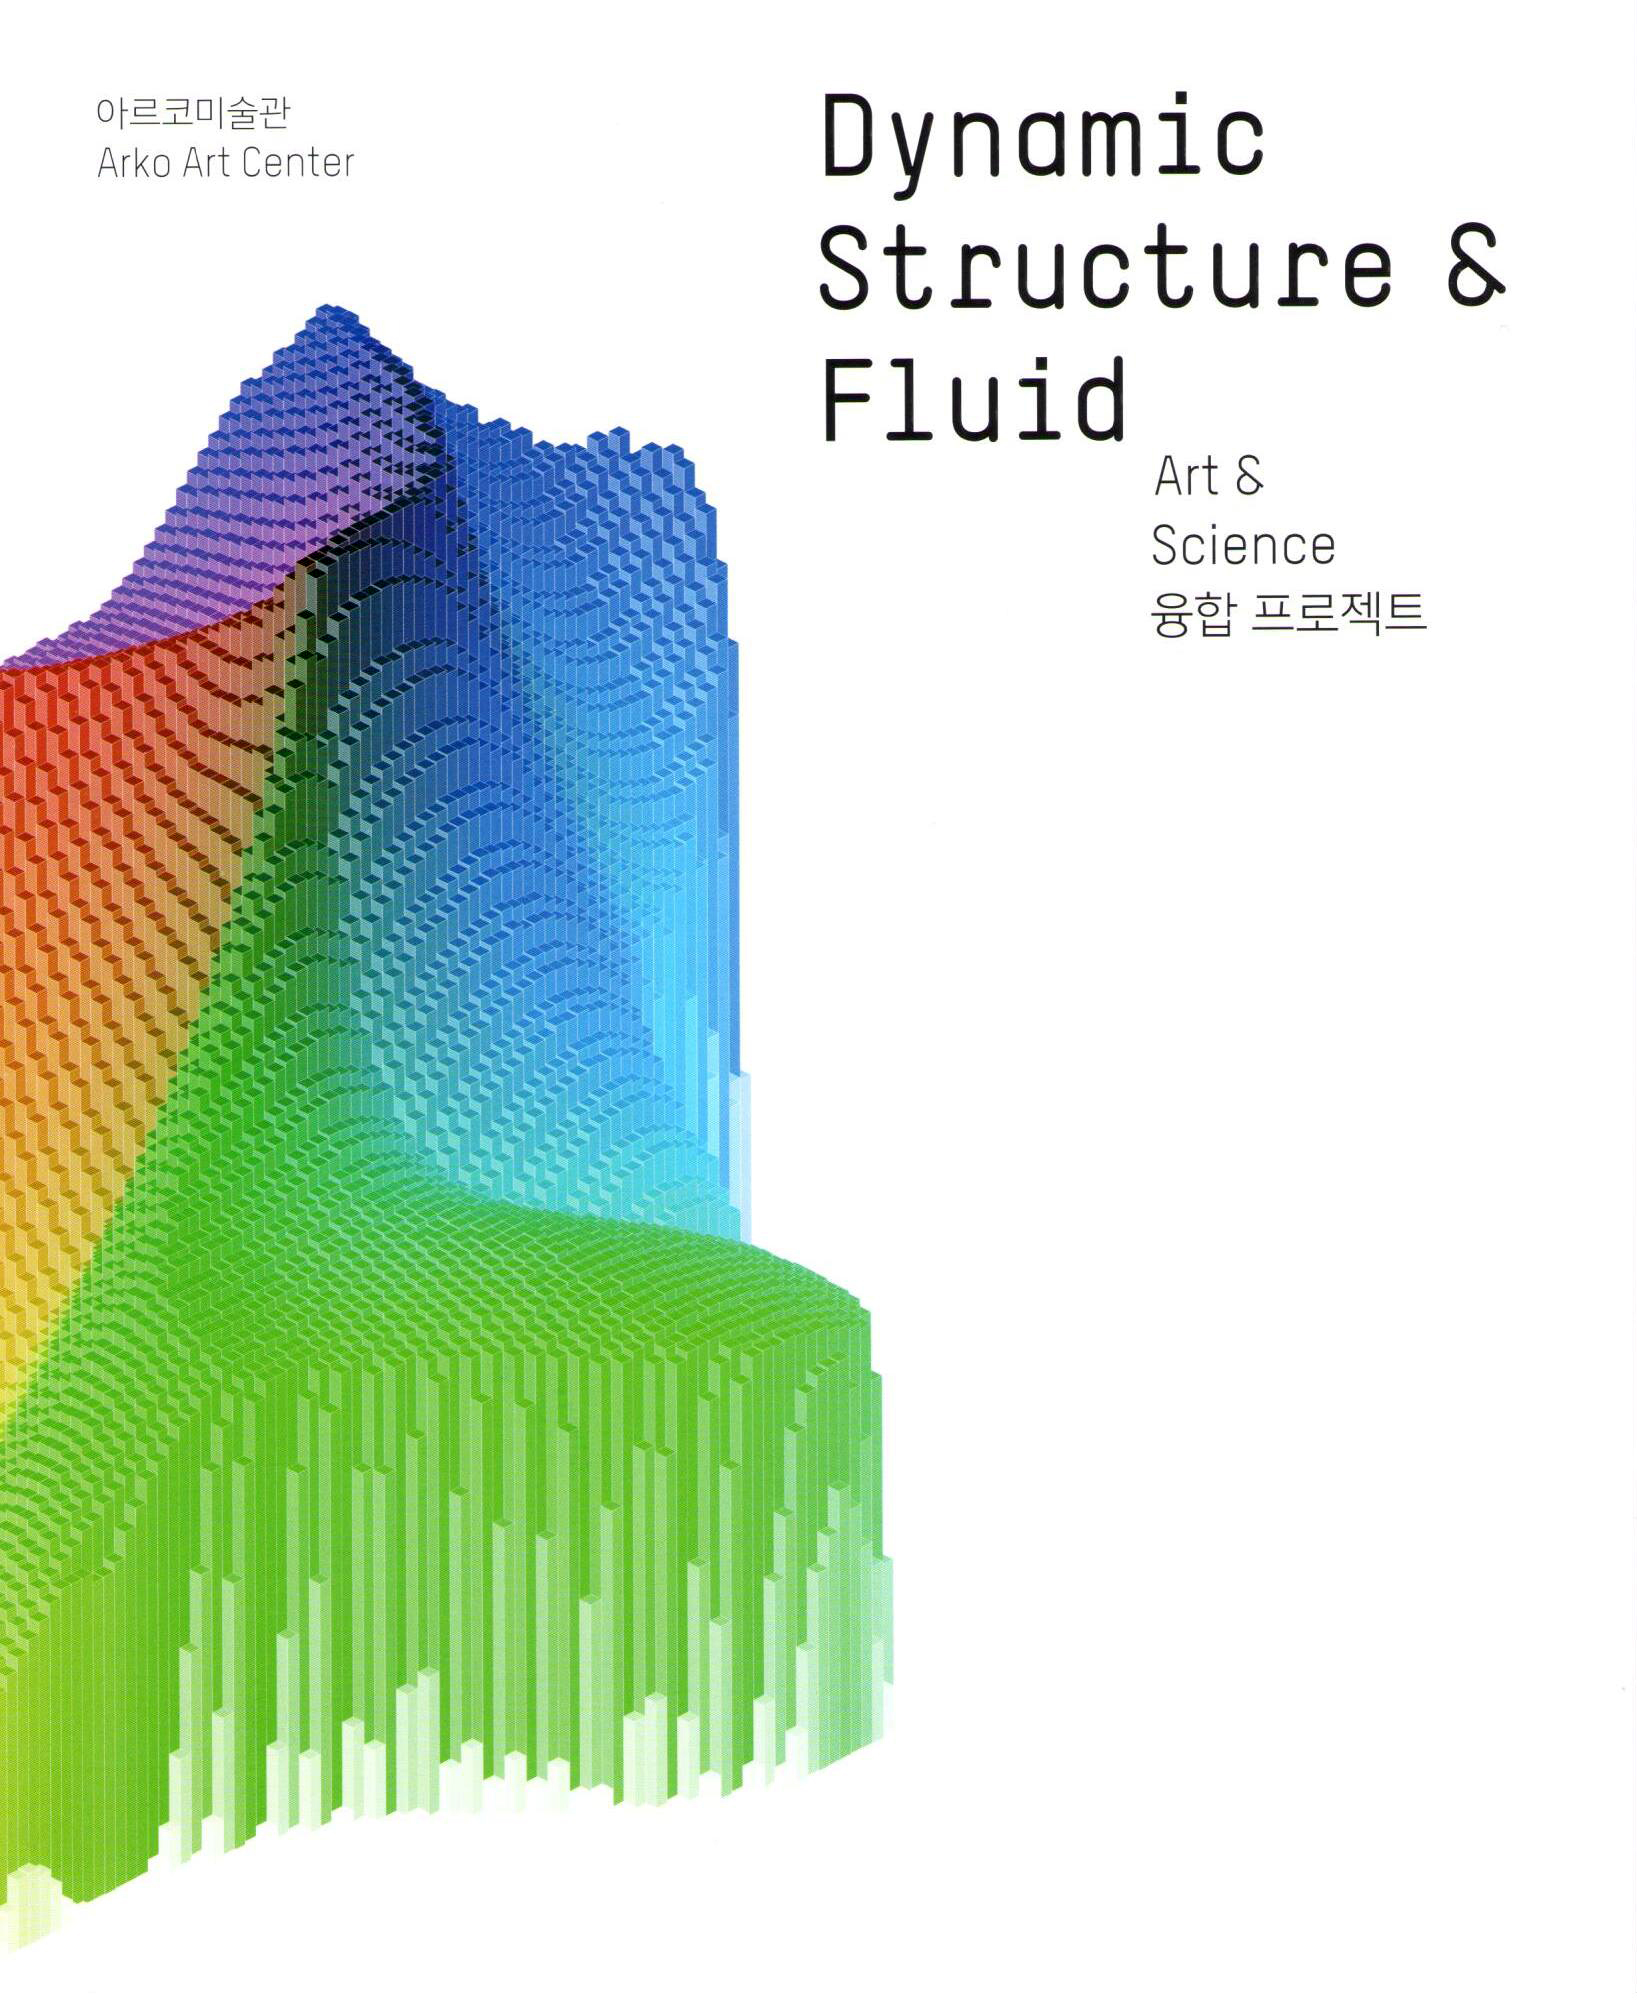 Dynamic Structure & Fluid: Art & Science 융합 프로젝트